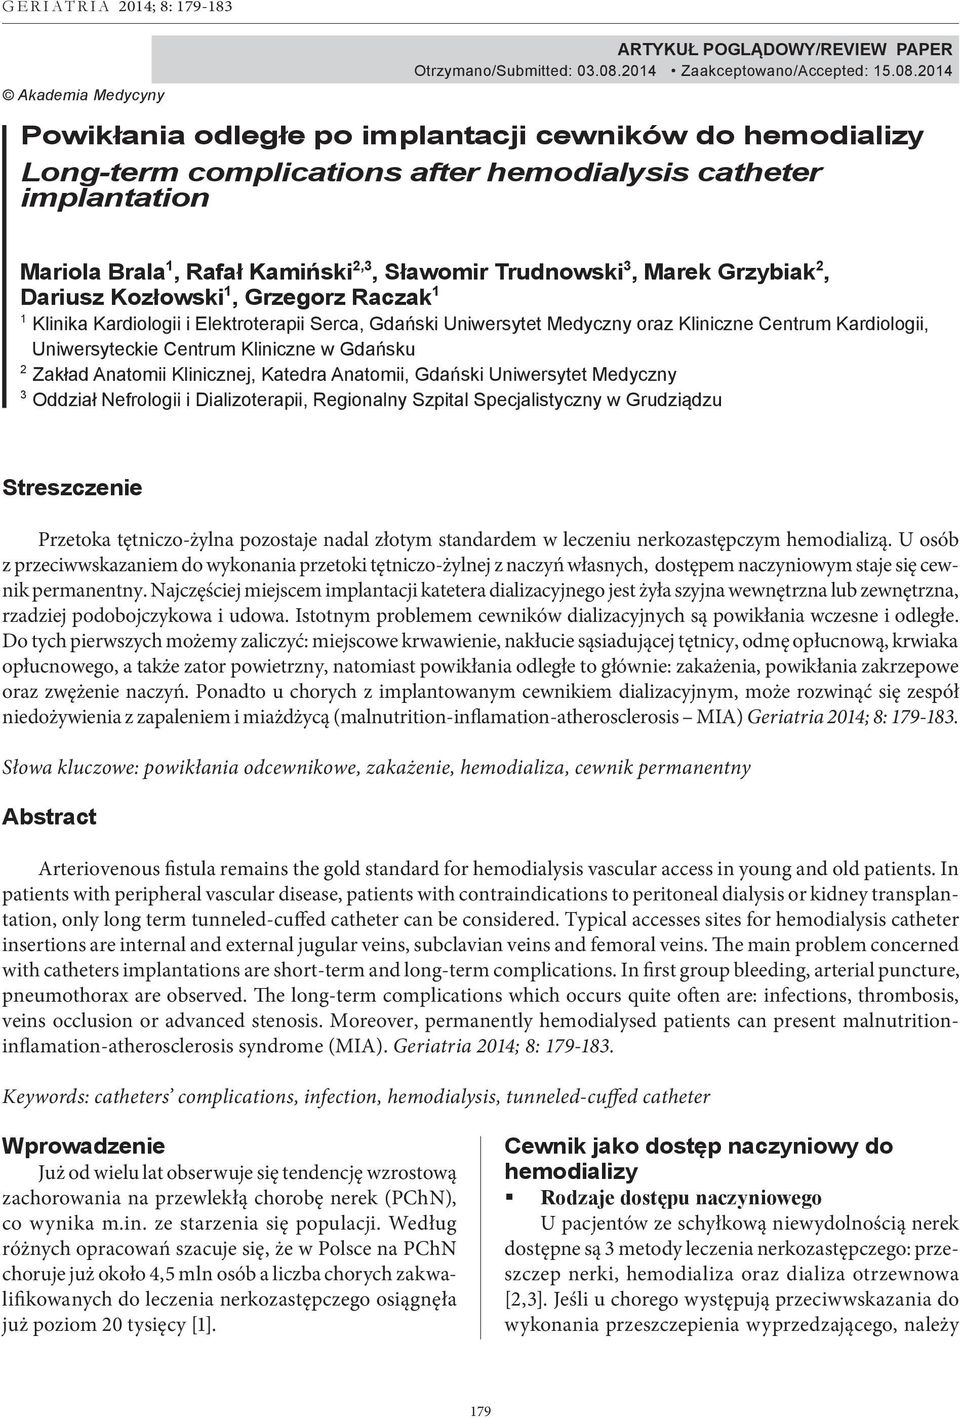 2014 Powikłania odległe po implantacji cewników do hemodializy Long-term complications after hemodialysis catheter implantation Mariola Brala 1, Rafał Kamiński 2,3, Sławomir Trudnowski 3, Marek